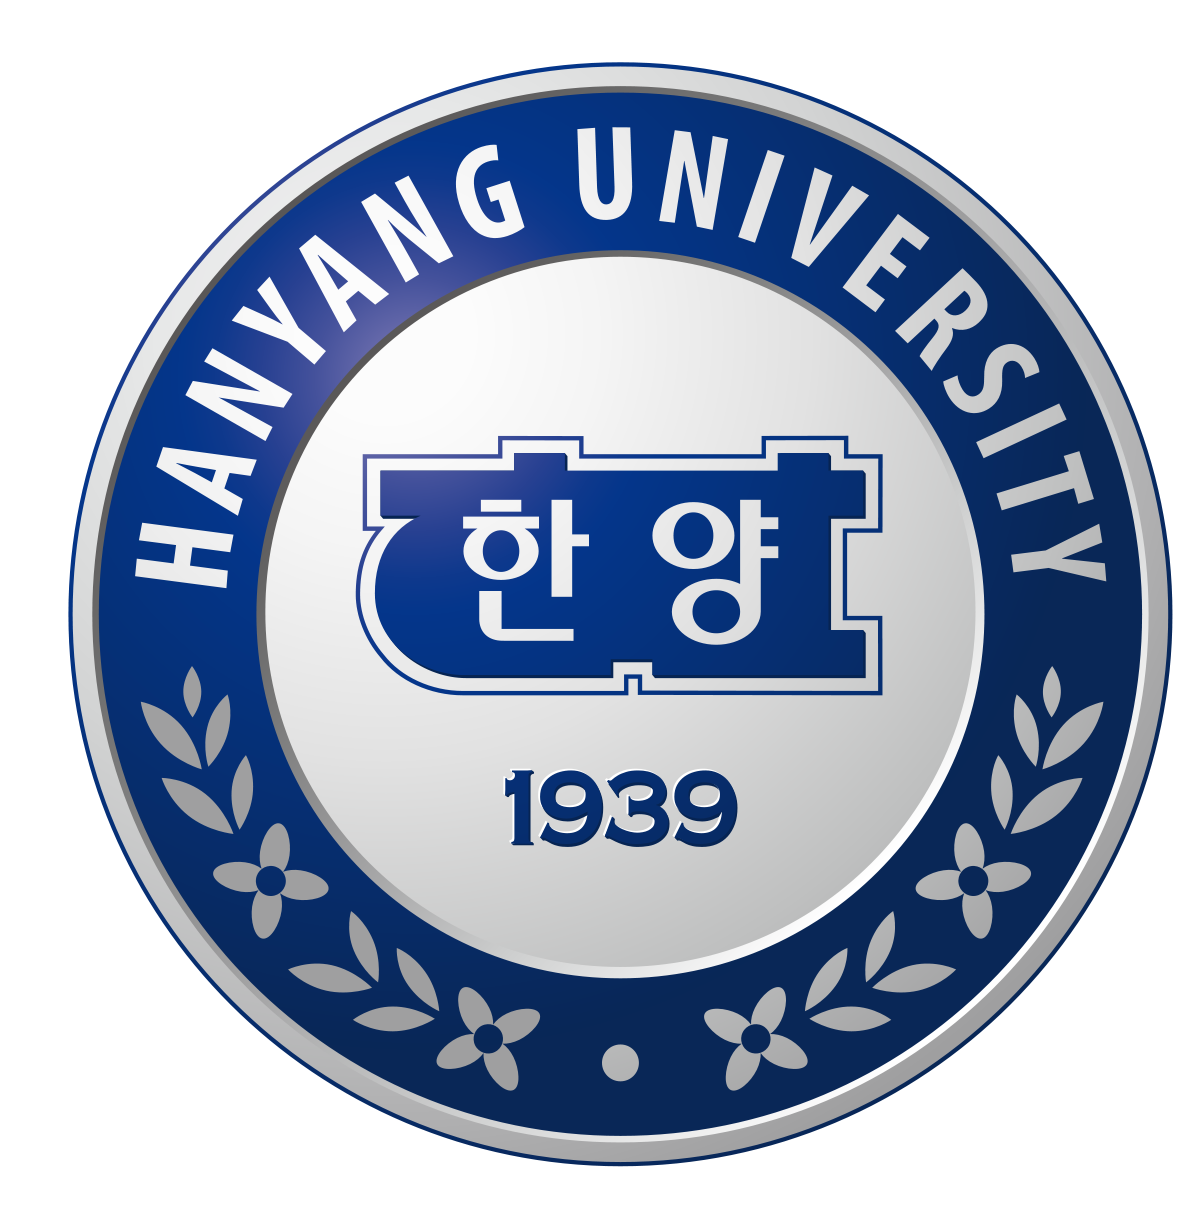 Hanyang_University_new.png